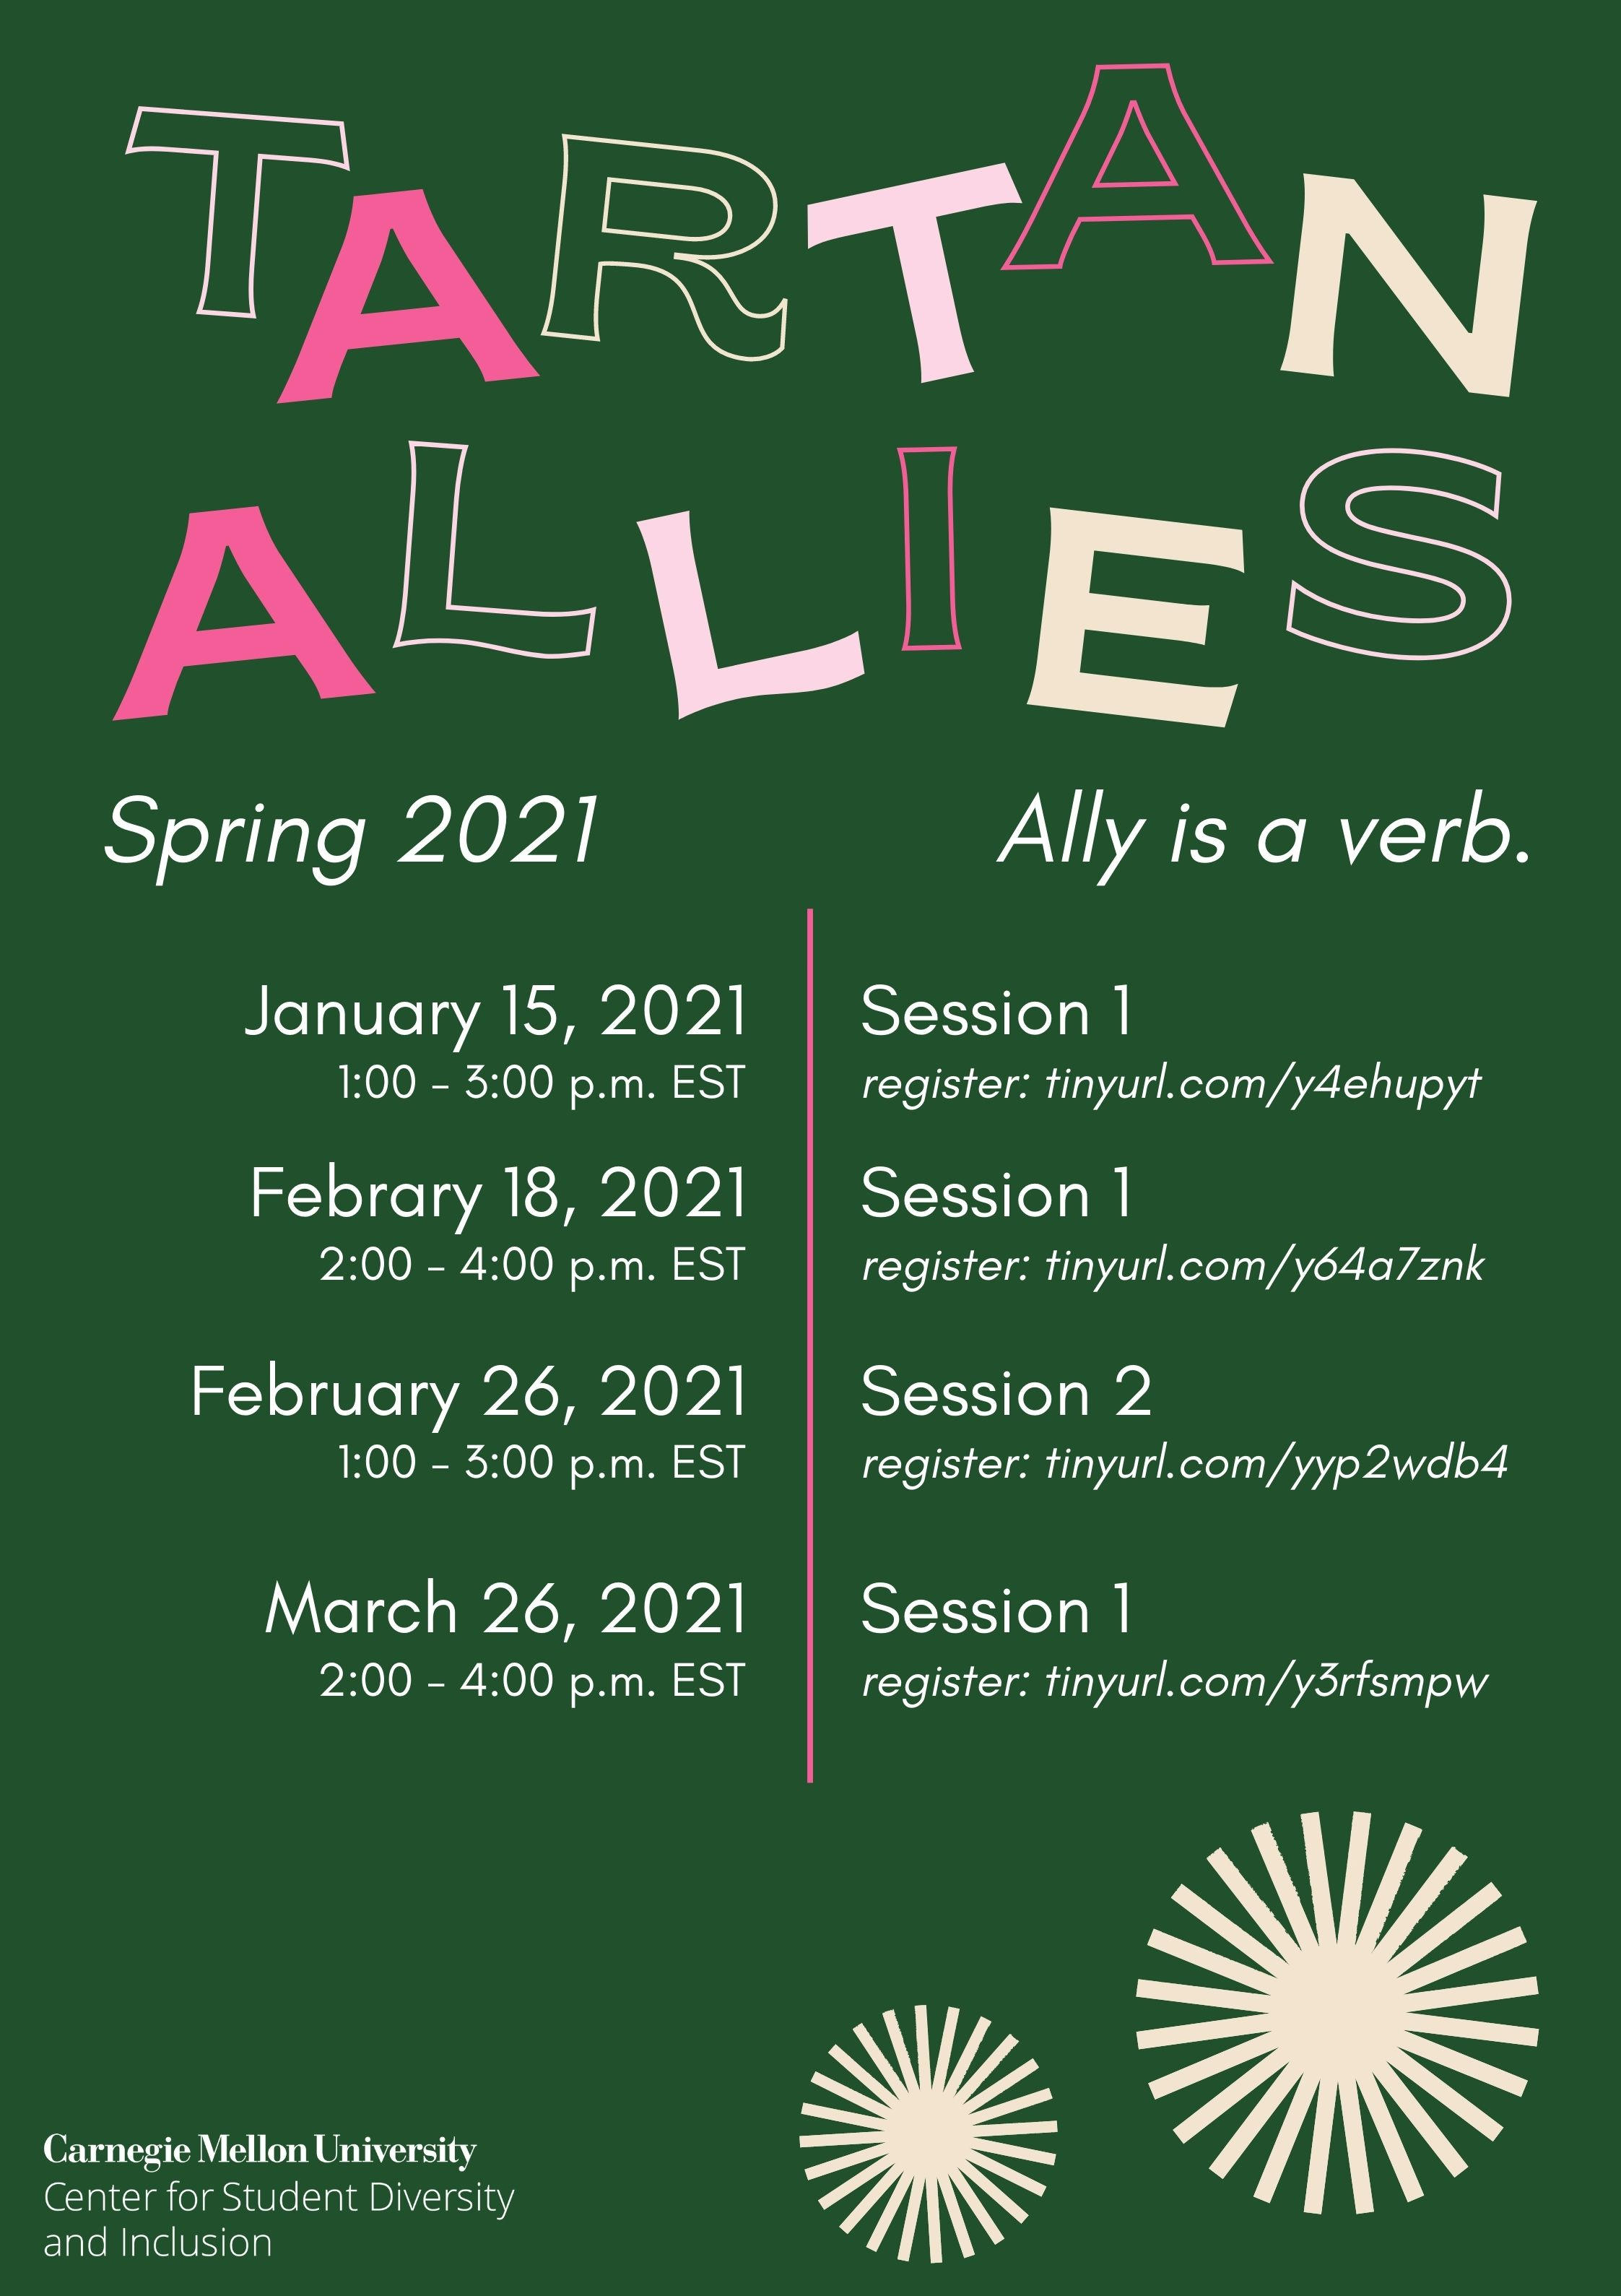 Flyer for Tartan Allies Spring 2021. Upcoming Session 1 is offered on February 18 and March 26. Session 2 is offered on February 26.